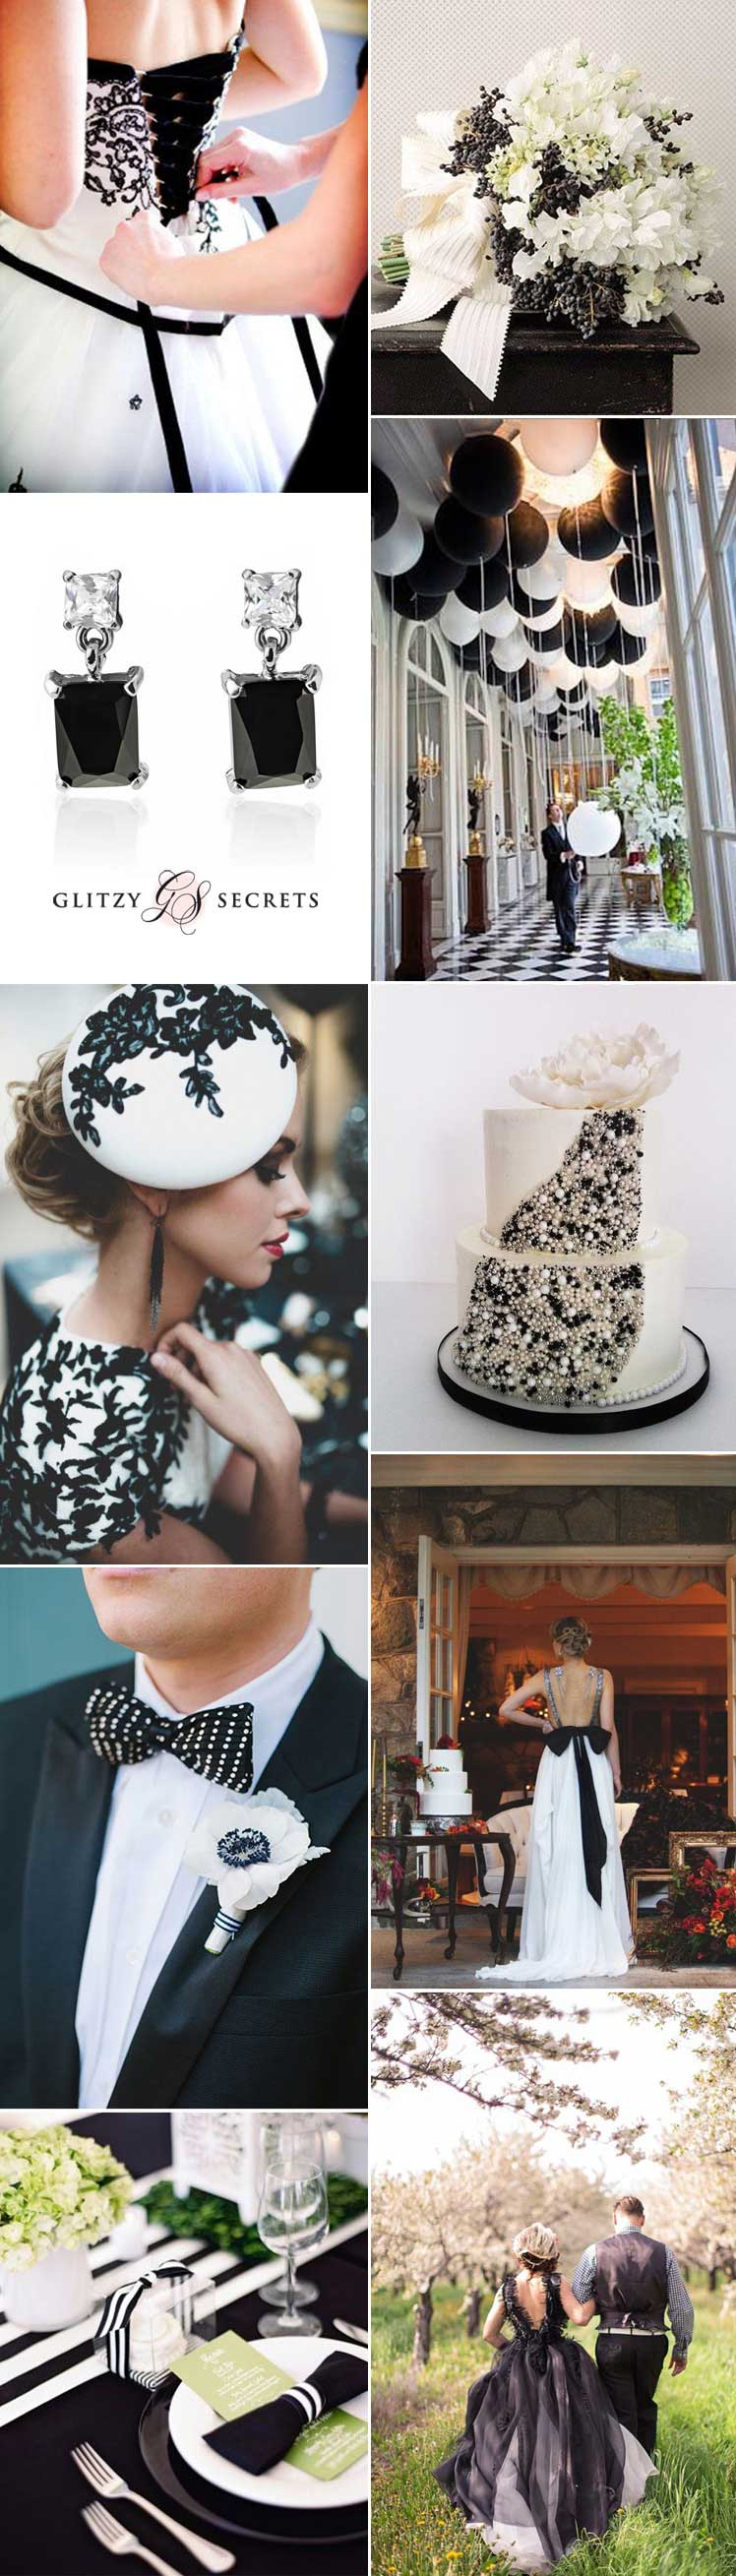 Chic monochrome wedding theme ideas